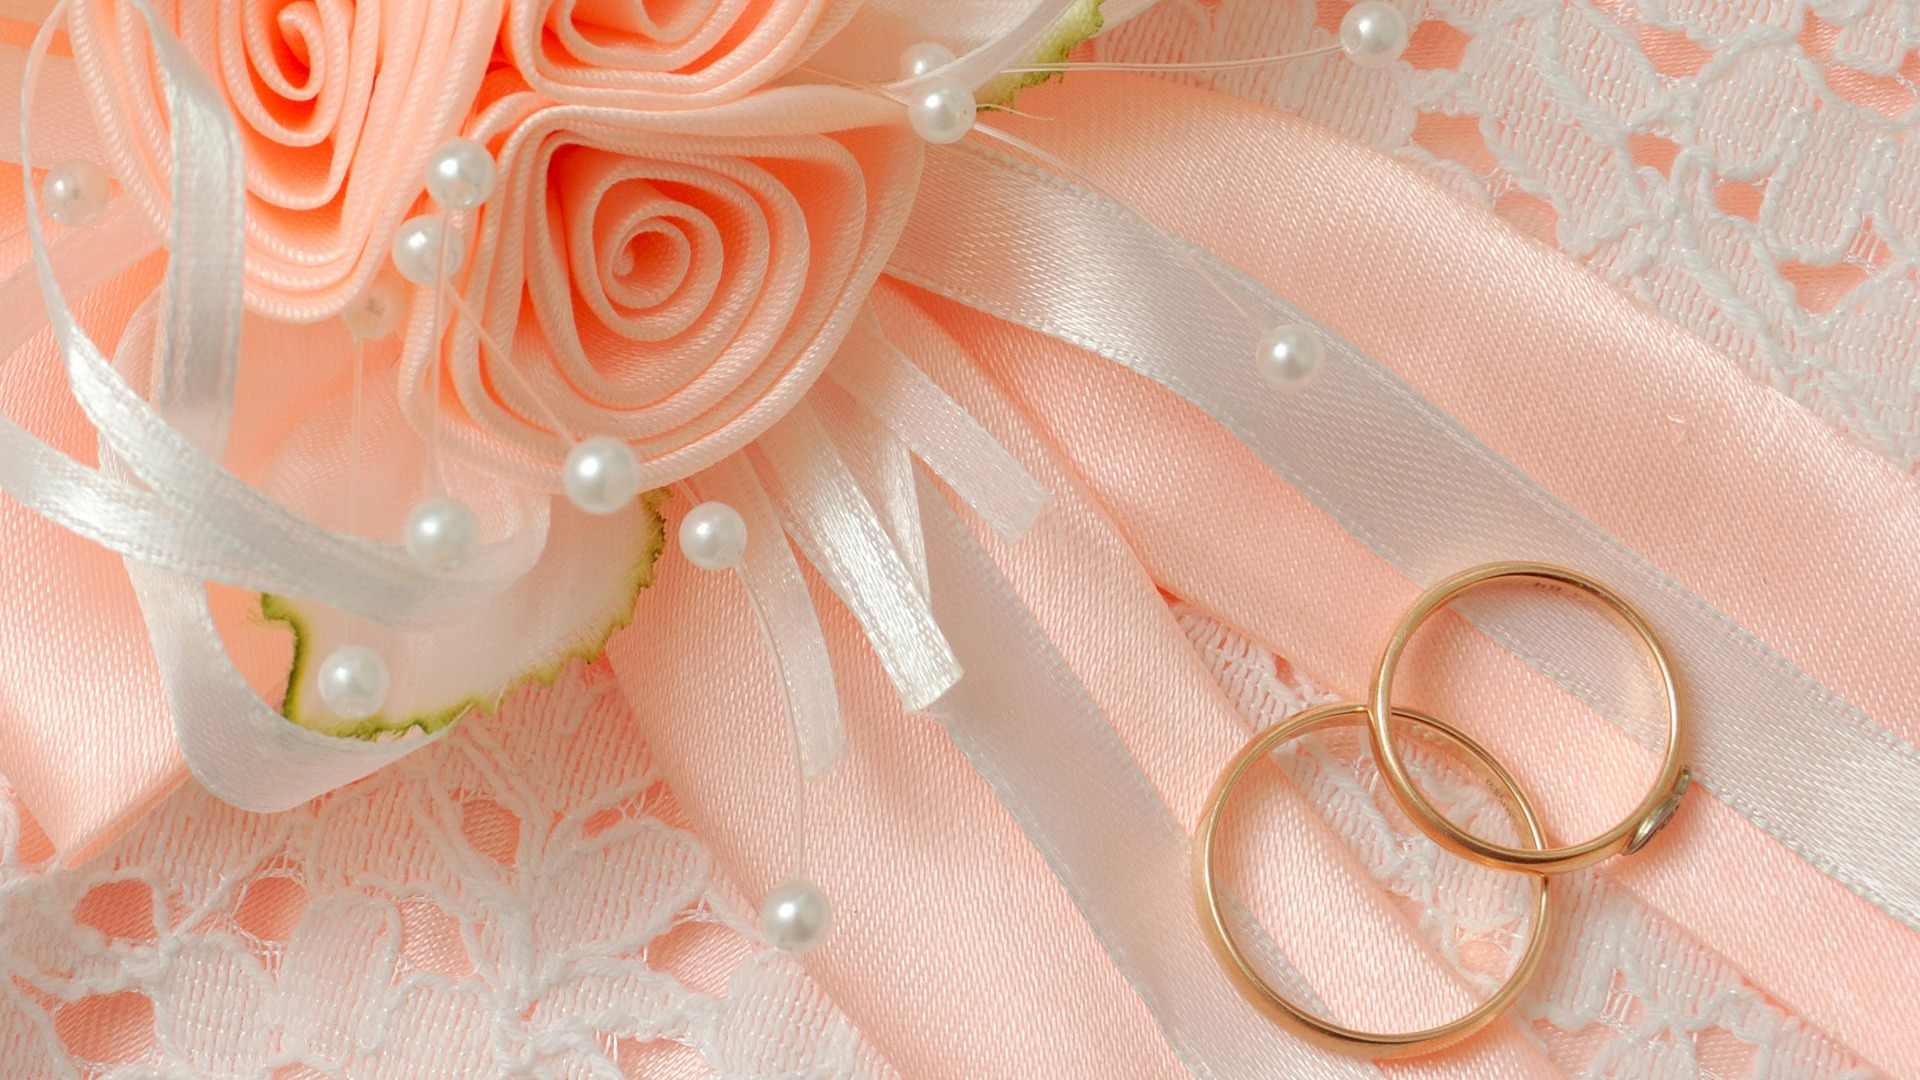 Ring Wedding and Pink Flower Picture HD  of Wedding HD Wallpaper